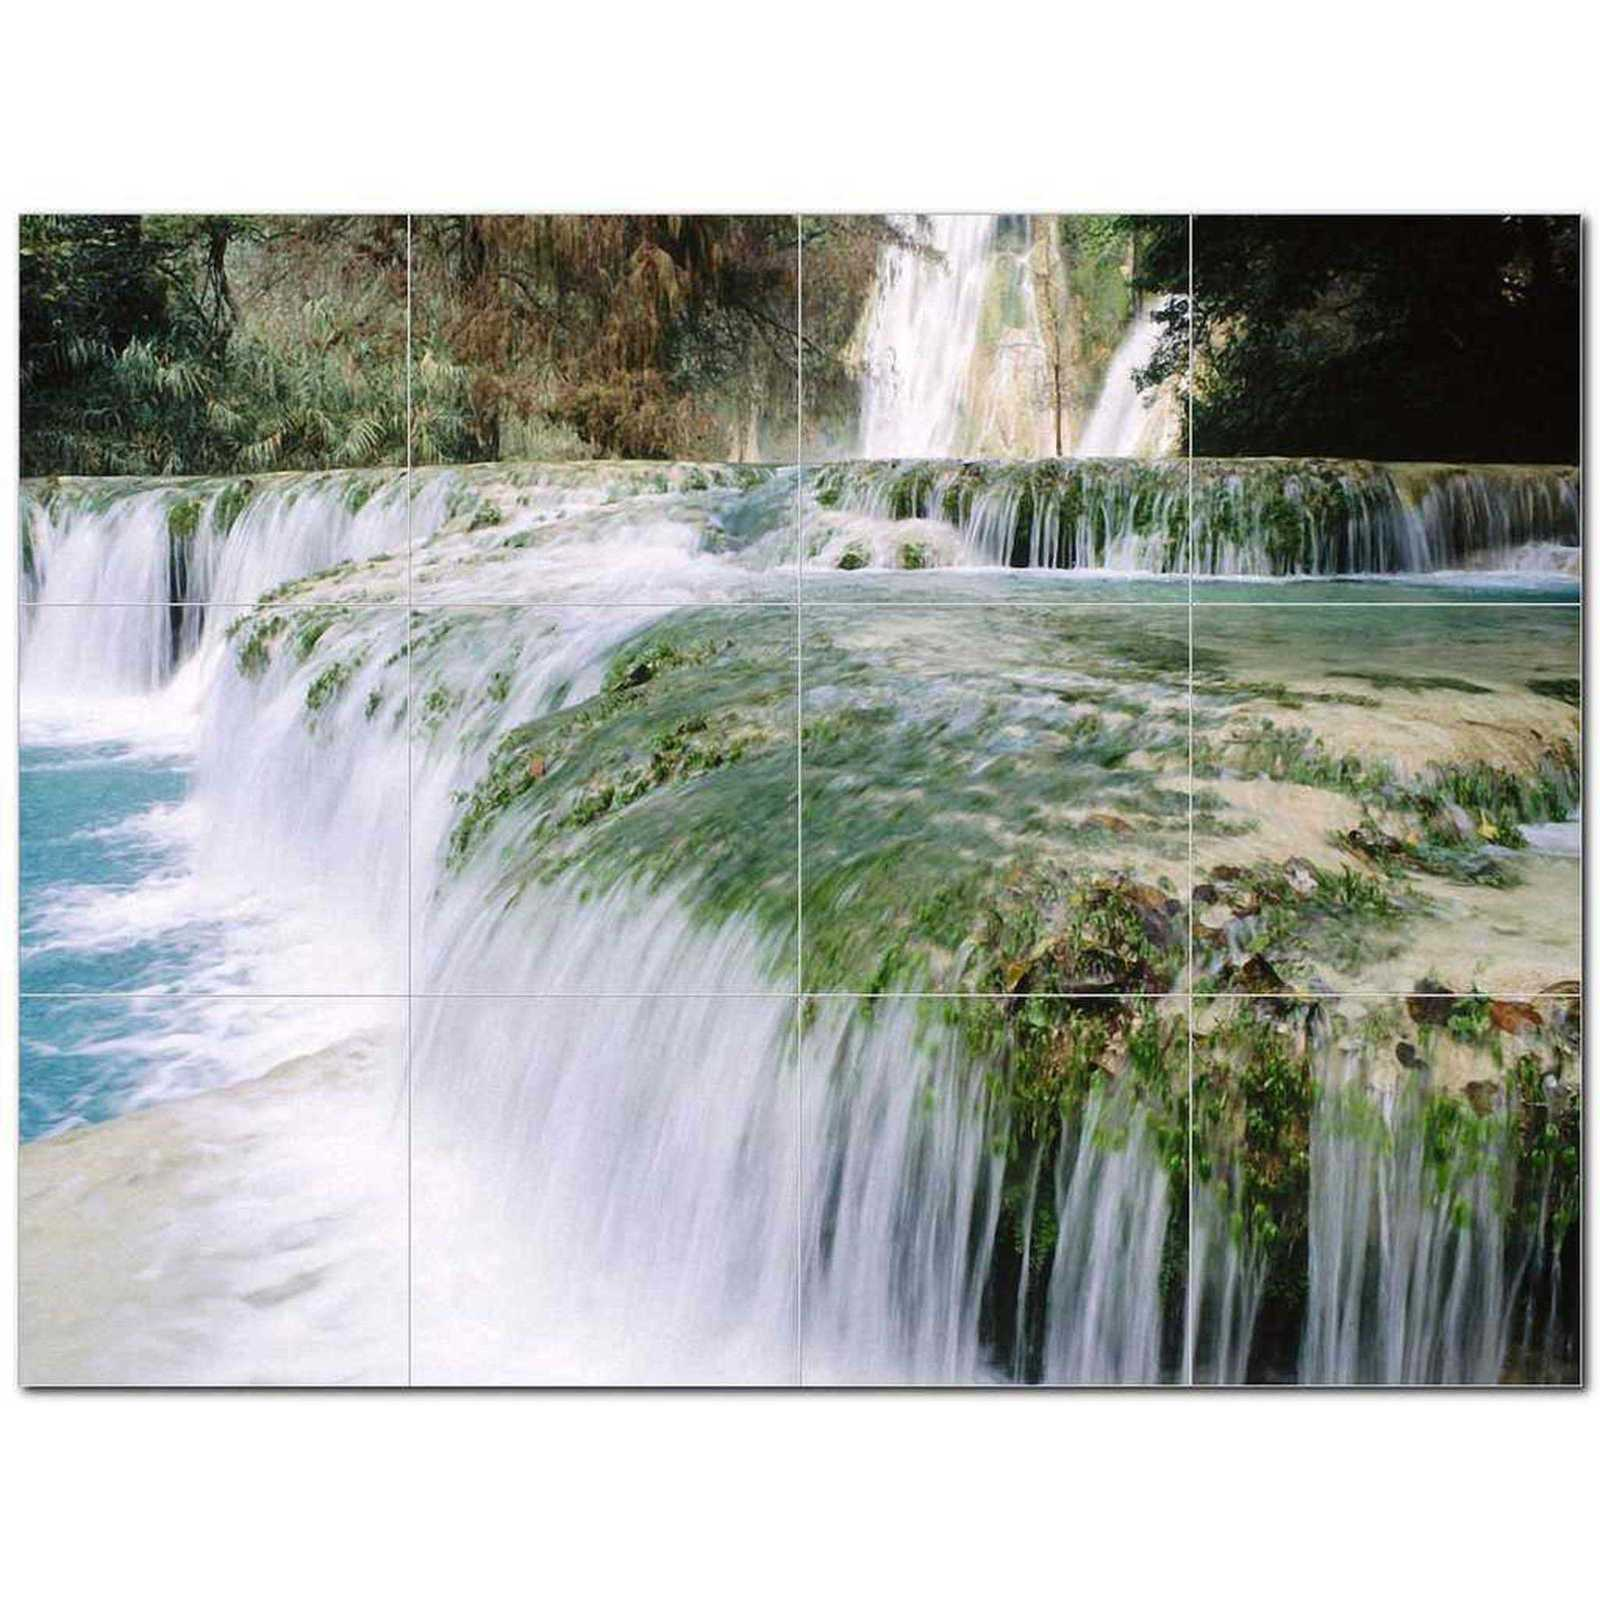 Primary image for Waterfalls Photo Ceramic Tile Mural Kitchen Backsplash Bathroom Shower BAZ406222